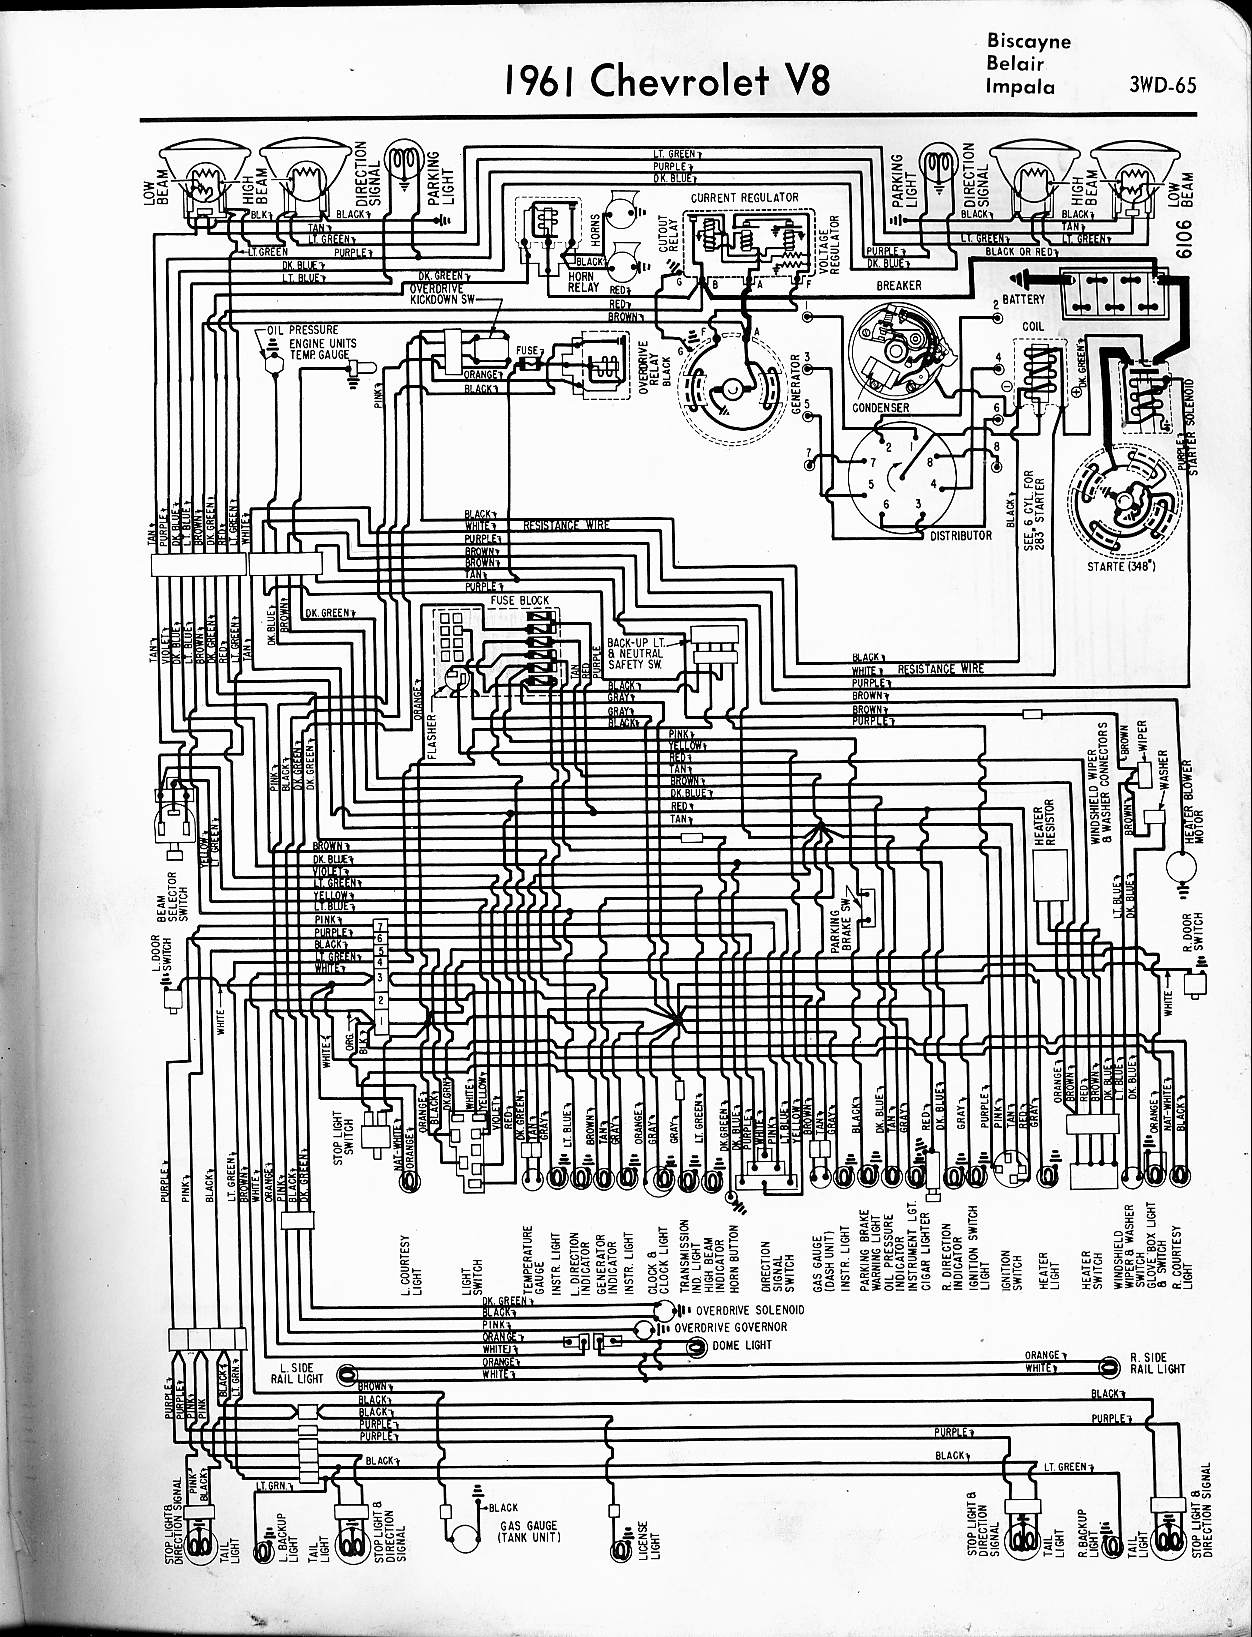 wiring diagram for 1965 chevy truck wiring diagram online Chevy Truck Wiring Harness Standard 57 65 chevy wiring diagrams wiring diagram for 1965 pontiac gto wiring diagram for 1965 chevy truck